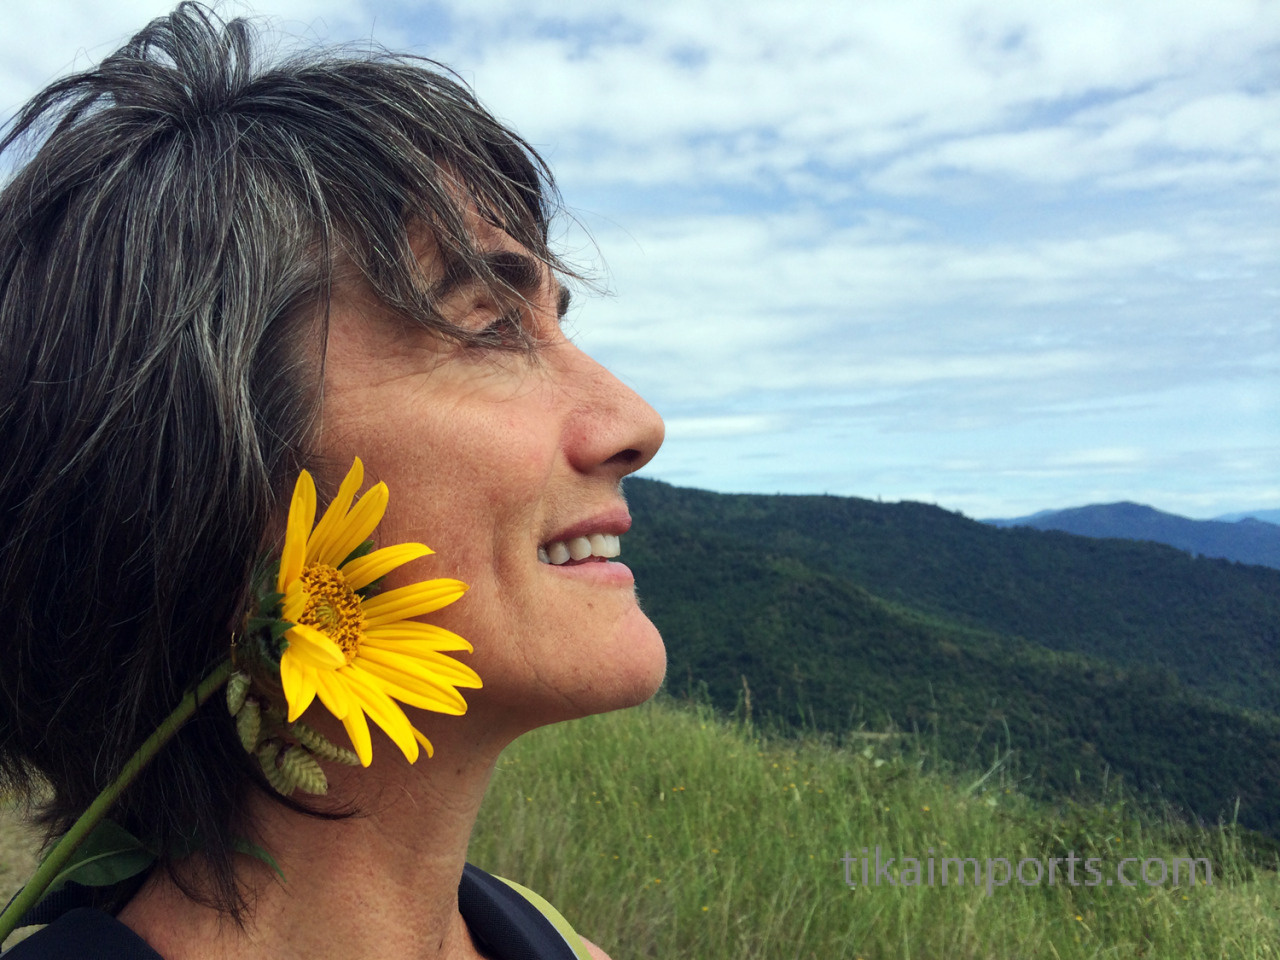 julie adorned with a sunflower